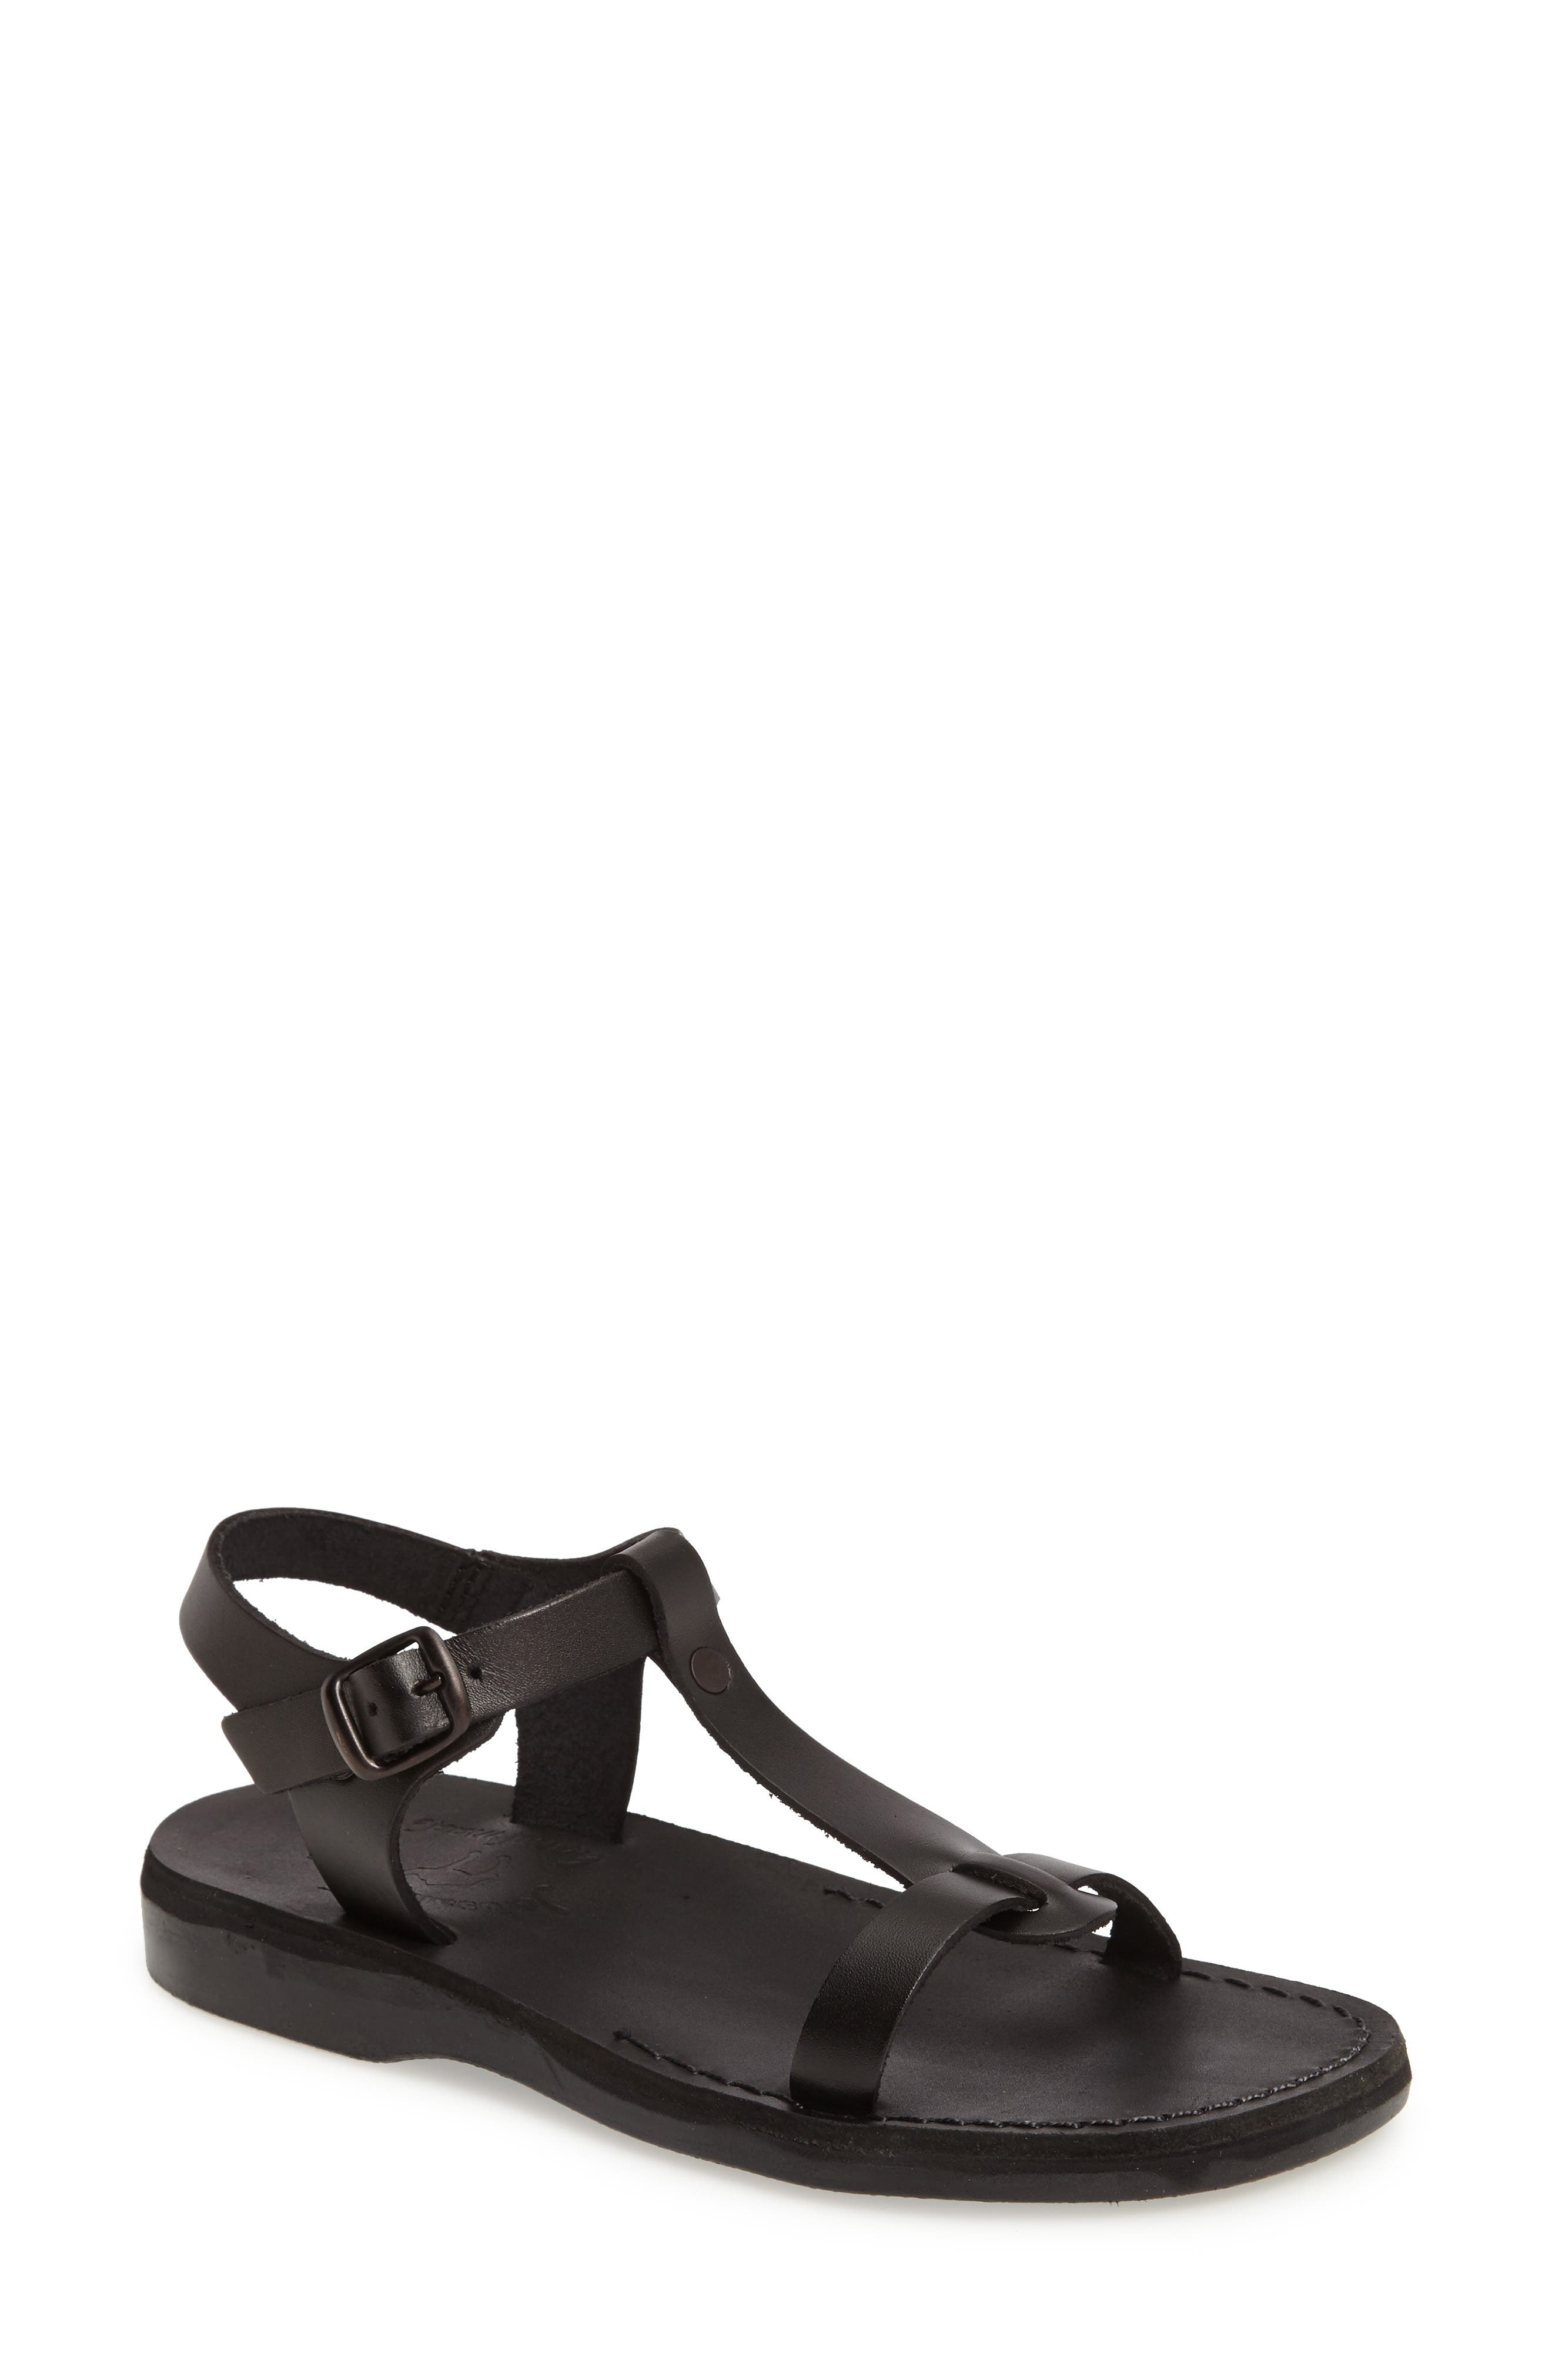 Bathsheba T-Strap Sandal,                             Main thumbnail 1, color,                             001